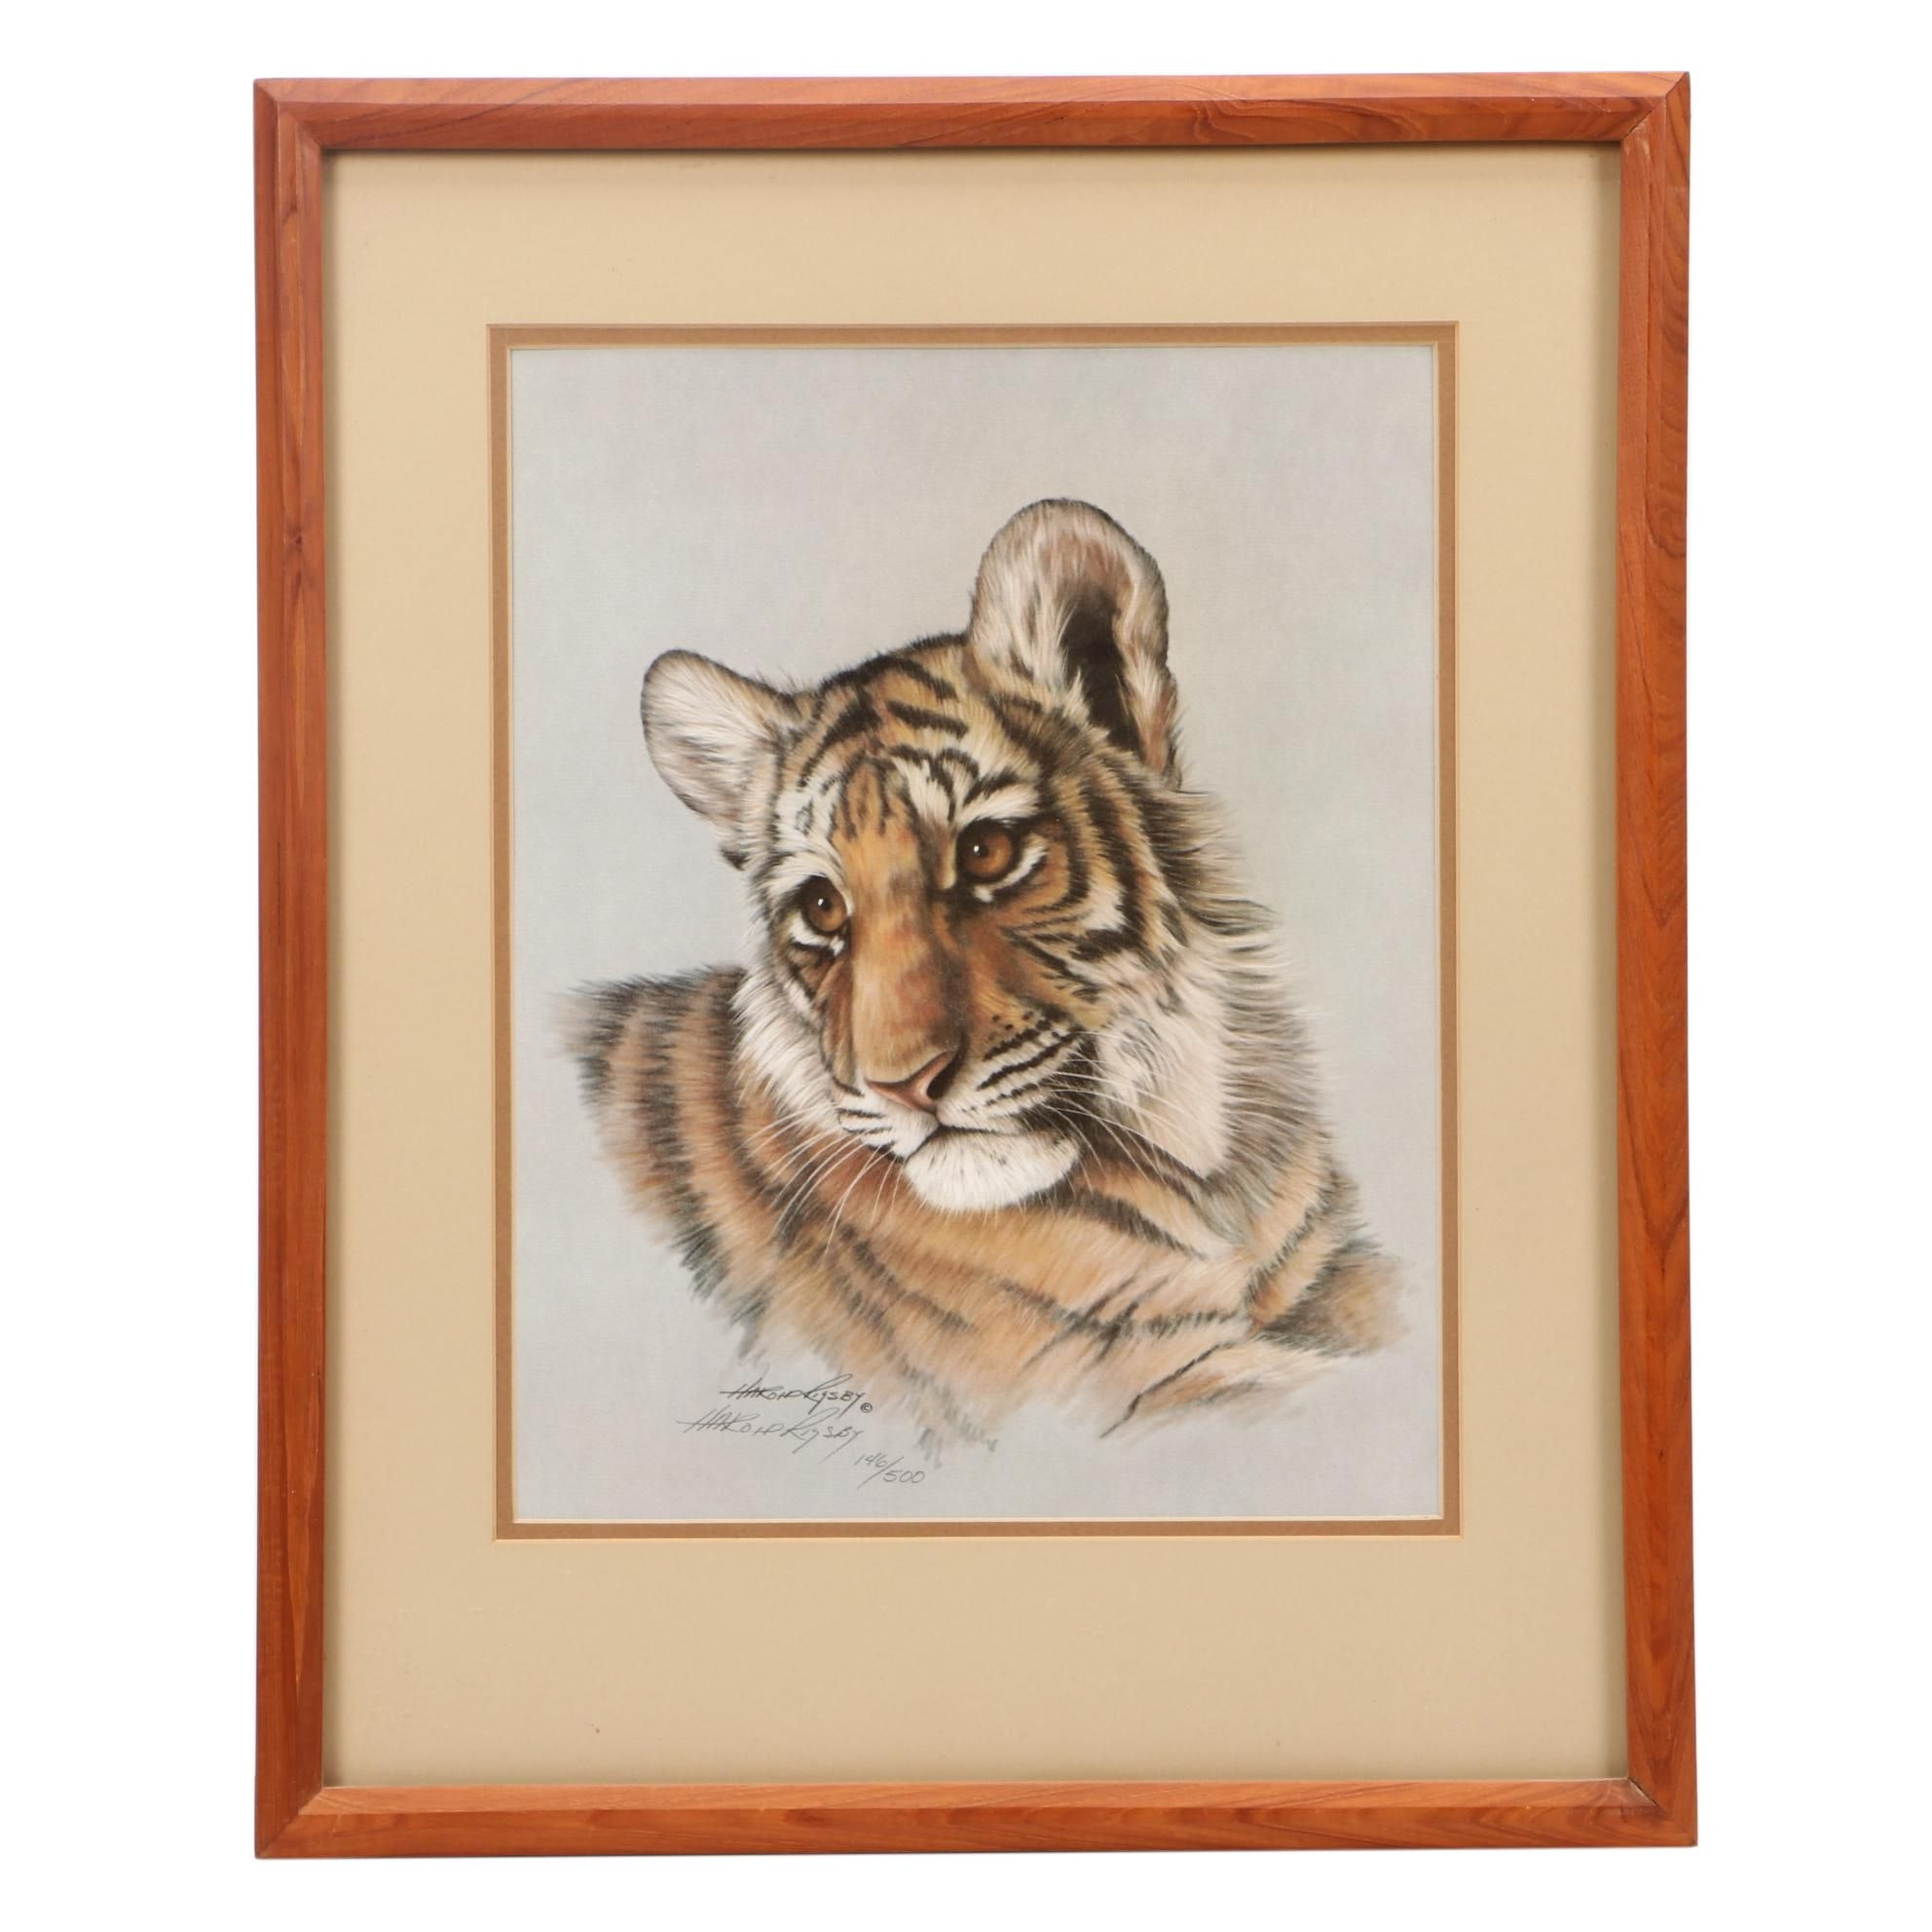 Harold Rigsby Limited Edition Offset Lithograph of Tiger